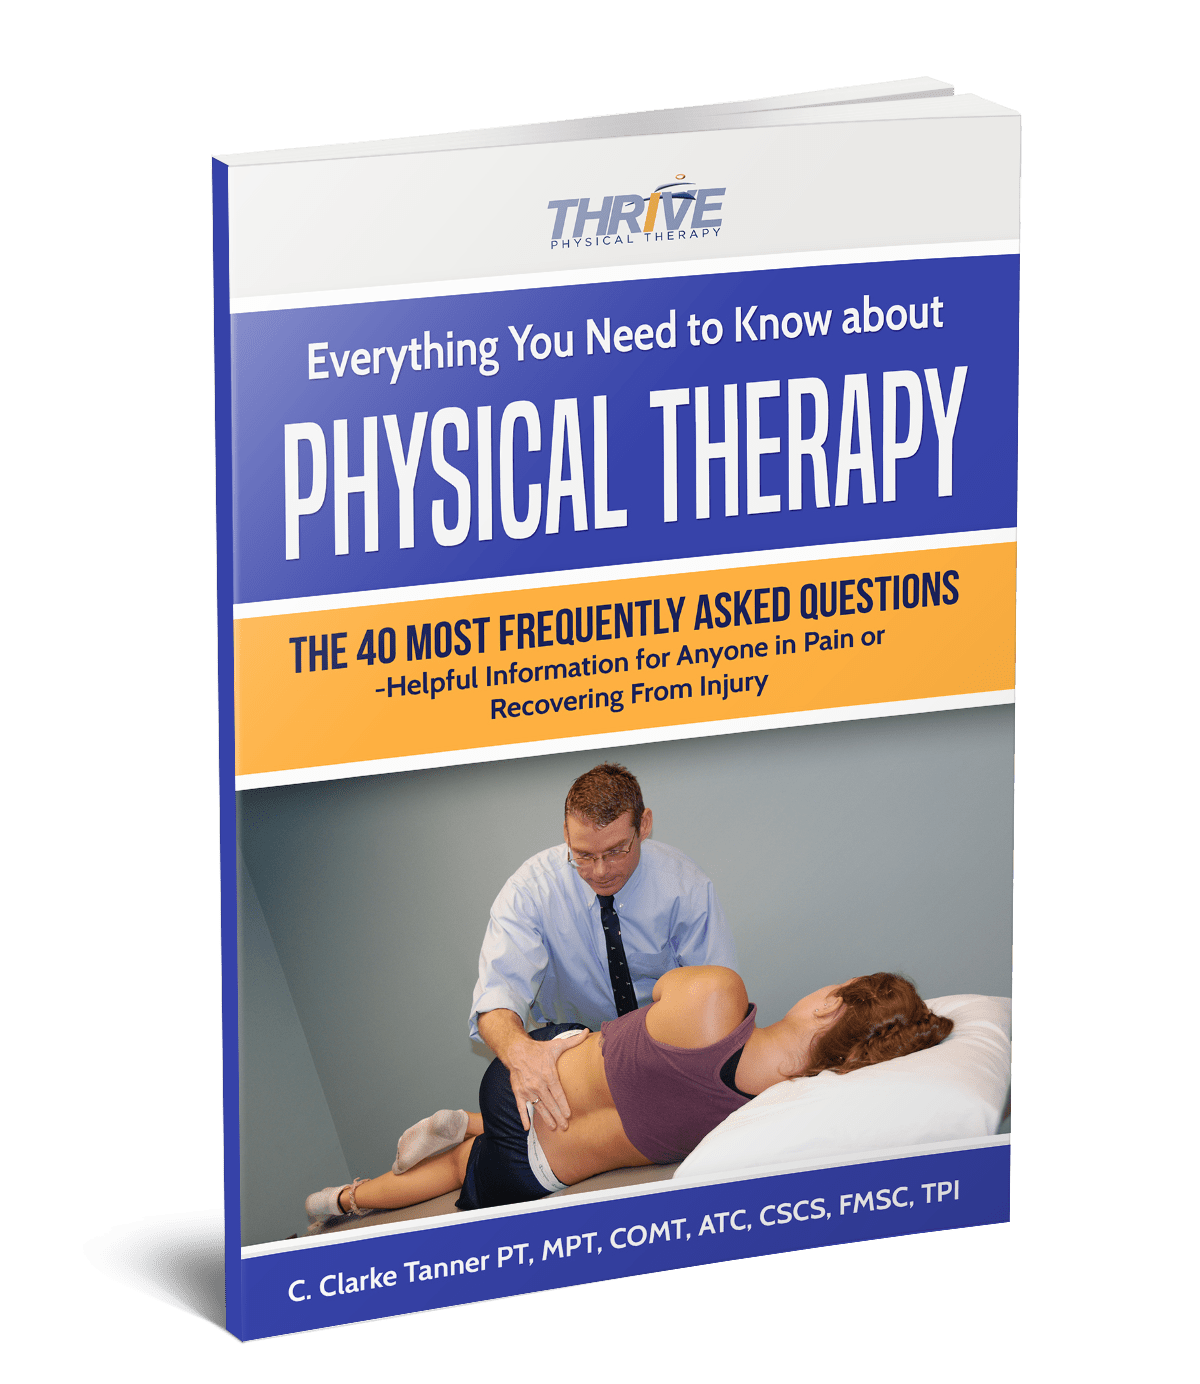 Physical Therapy in Richmond, VA - Thrive Physical Therapy